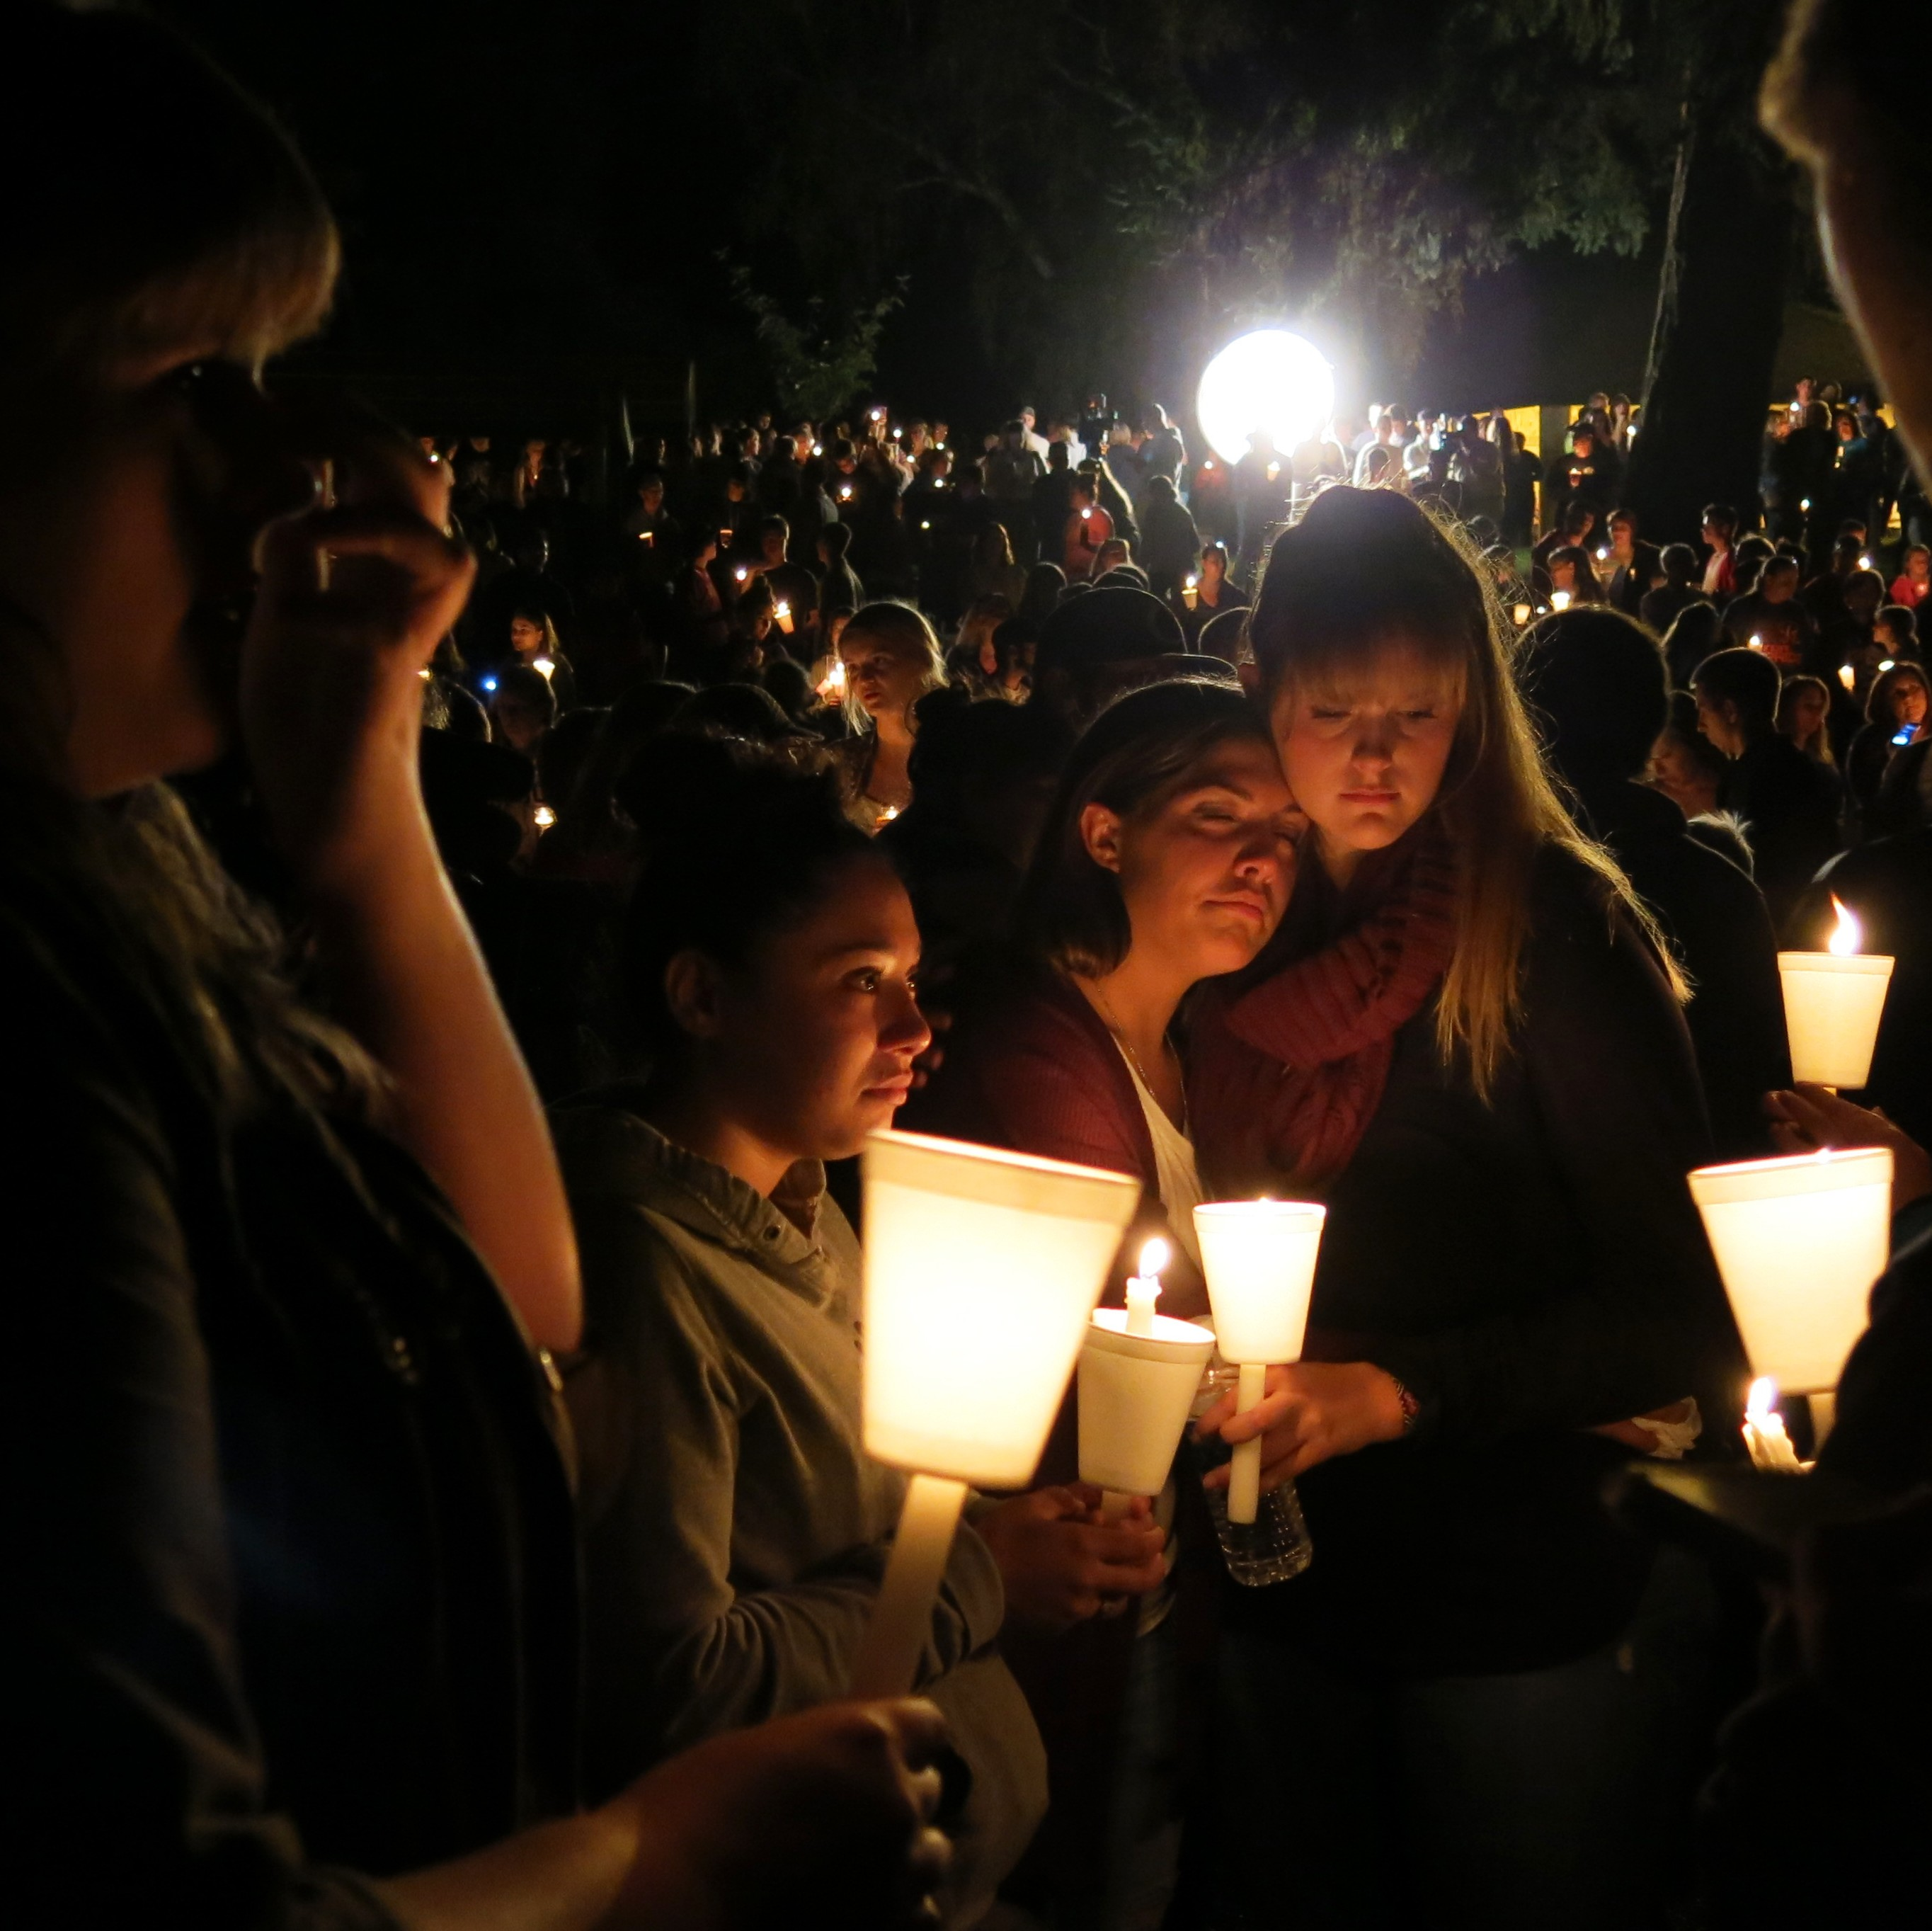 Details Emerge About Umpqua Community College Shooting